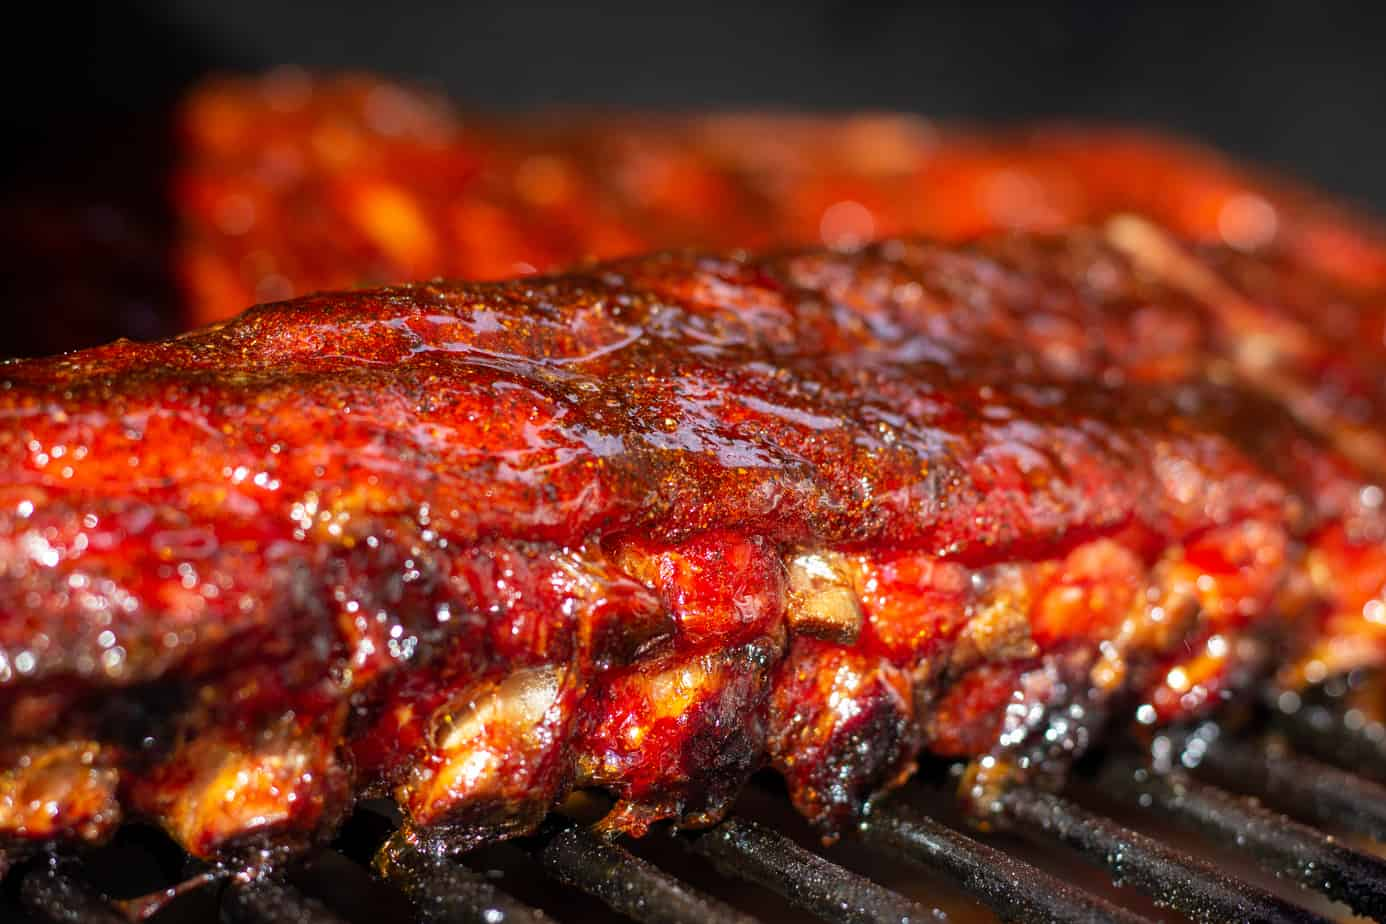 2 racks of Honey Garlic Pork Ribs on a grill grate